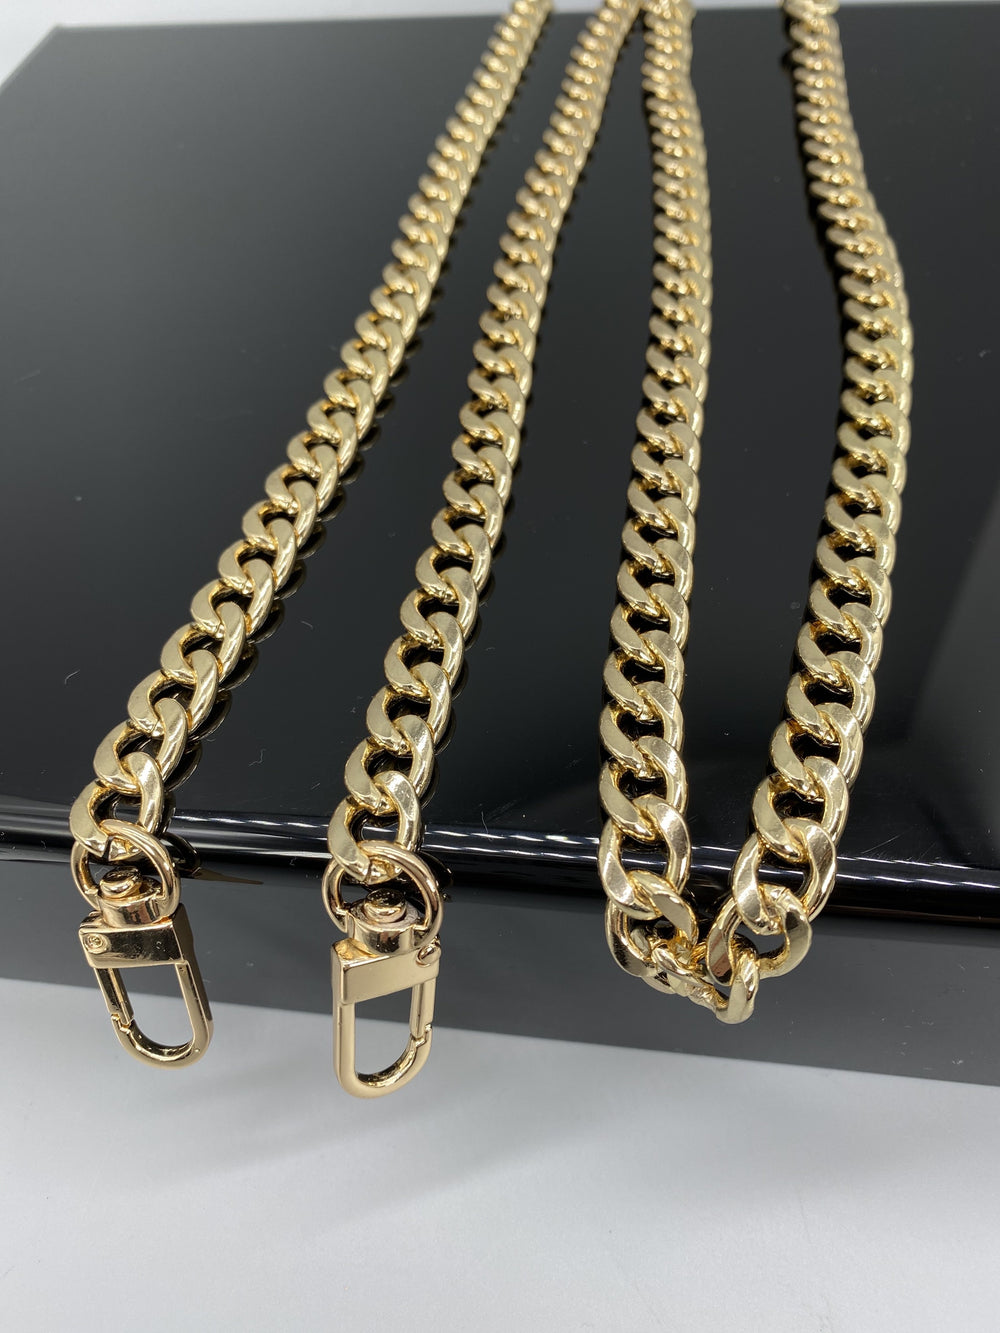 Metal Purse Chain Strap